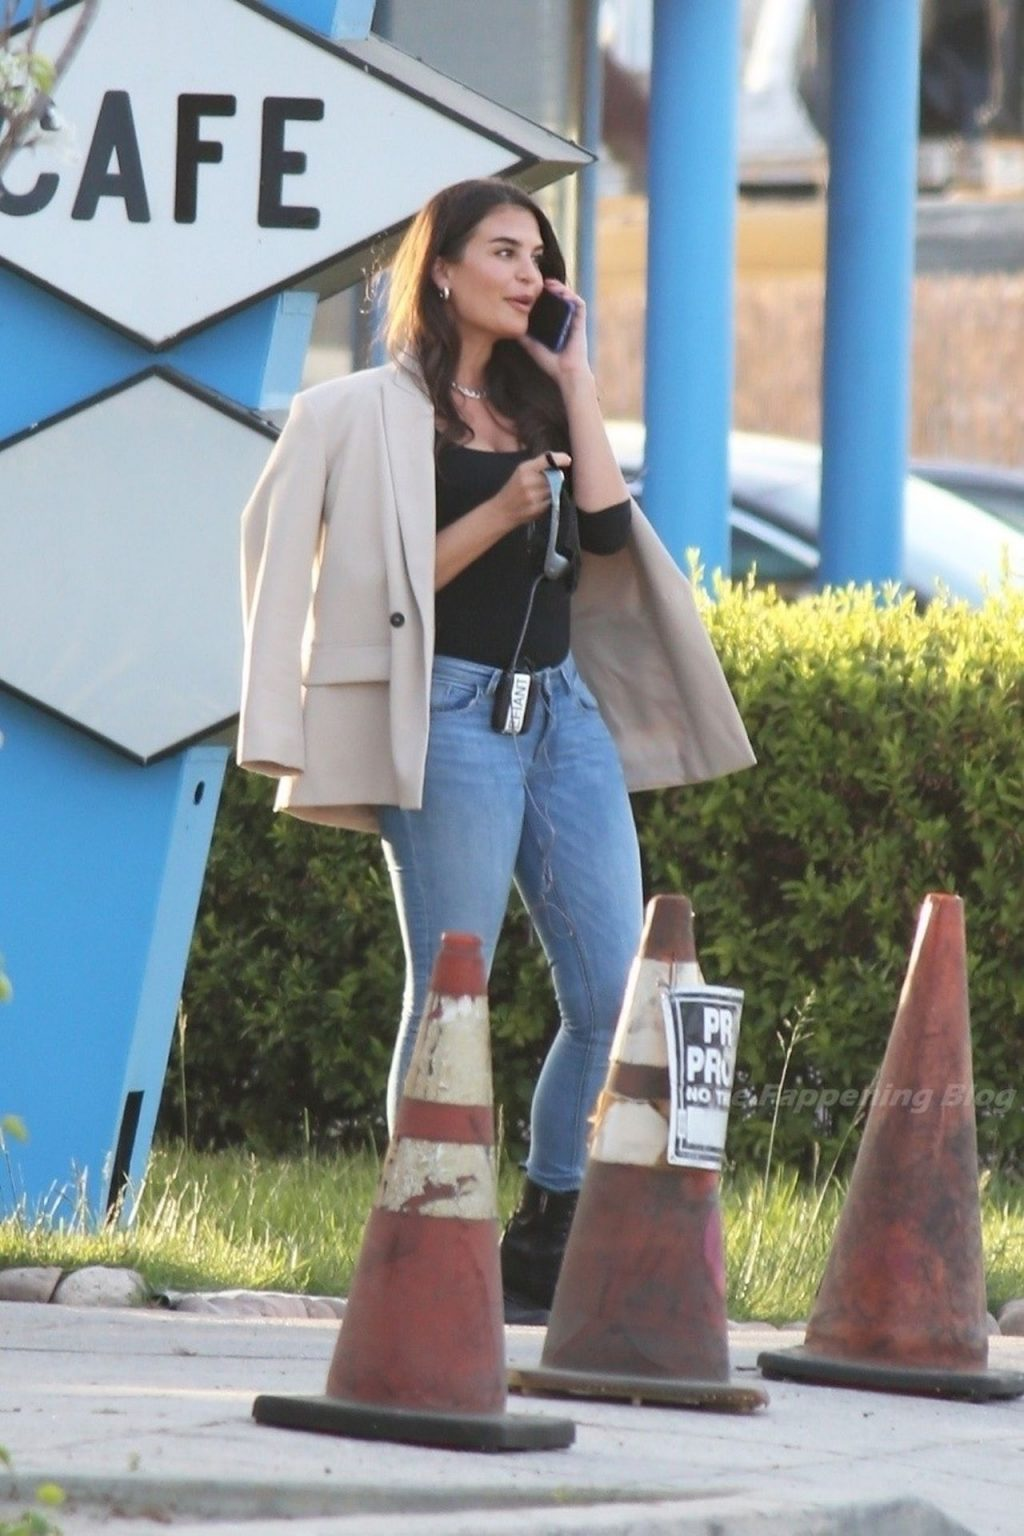 Teodora Djuric Takes a Break From Filming at The Pink Motel and Cadillac Jacks Cafe (18 Photos)